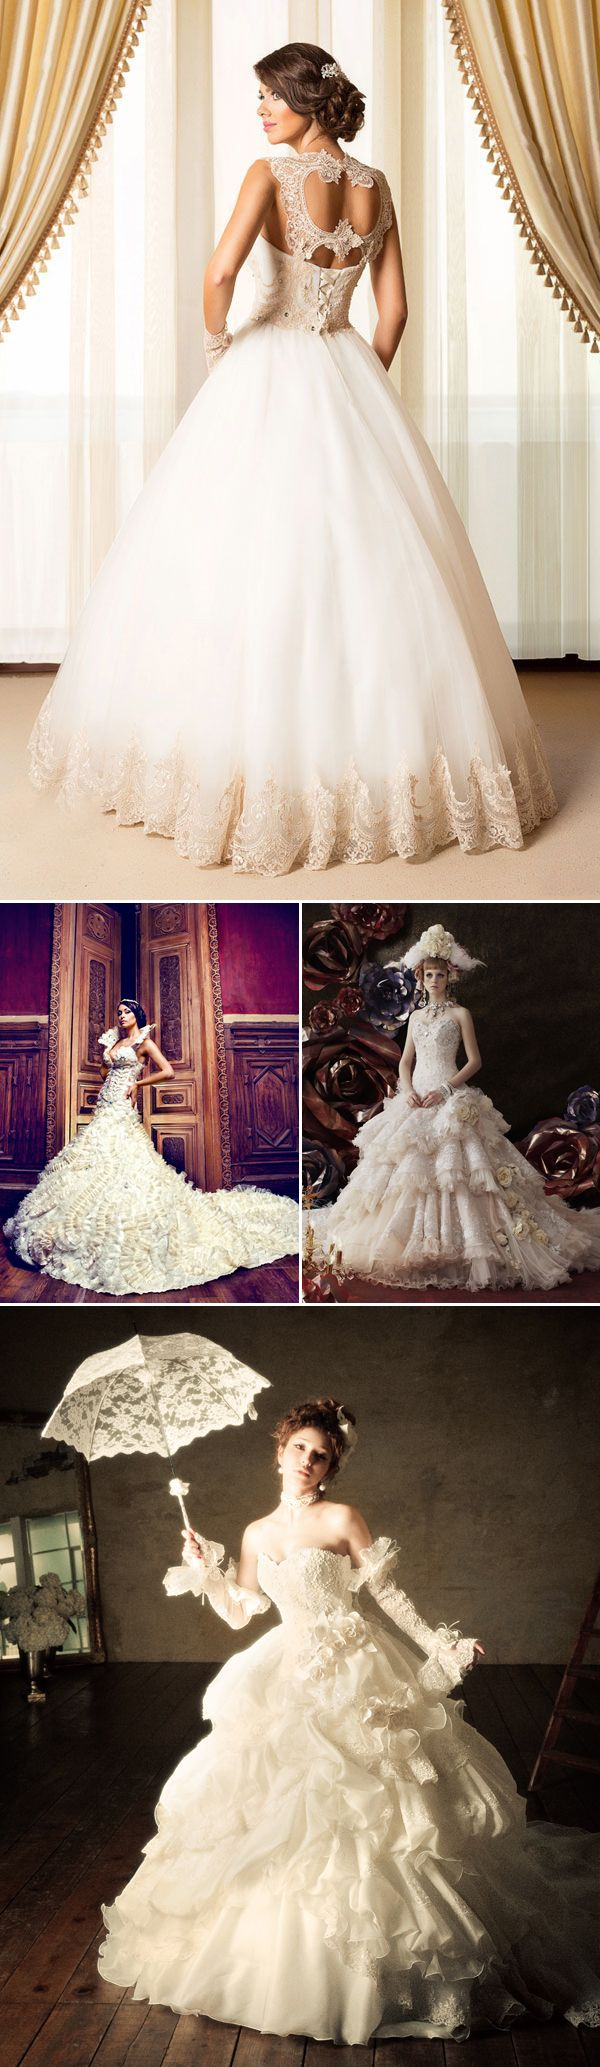 37 Princess Royal Ball Gowns with a touch of Glam! Vintage Touch